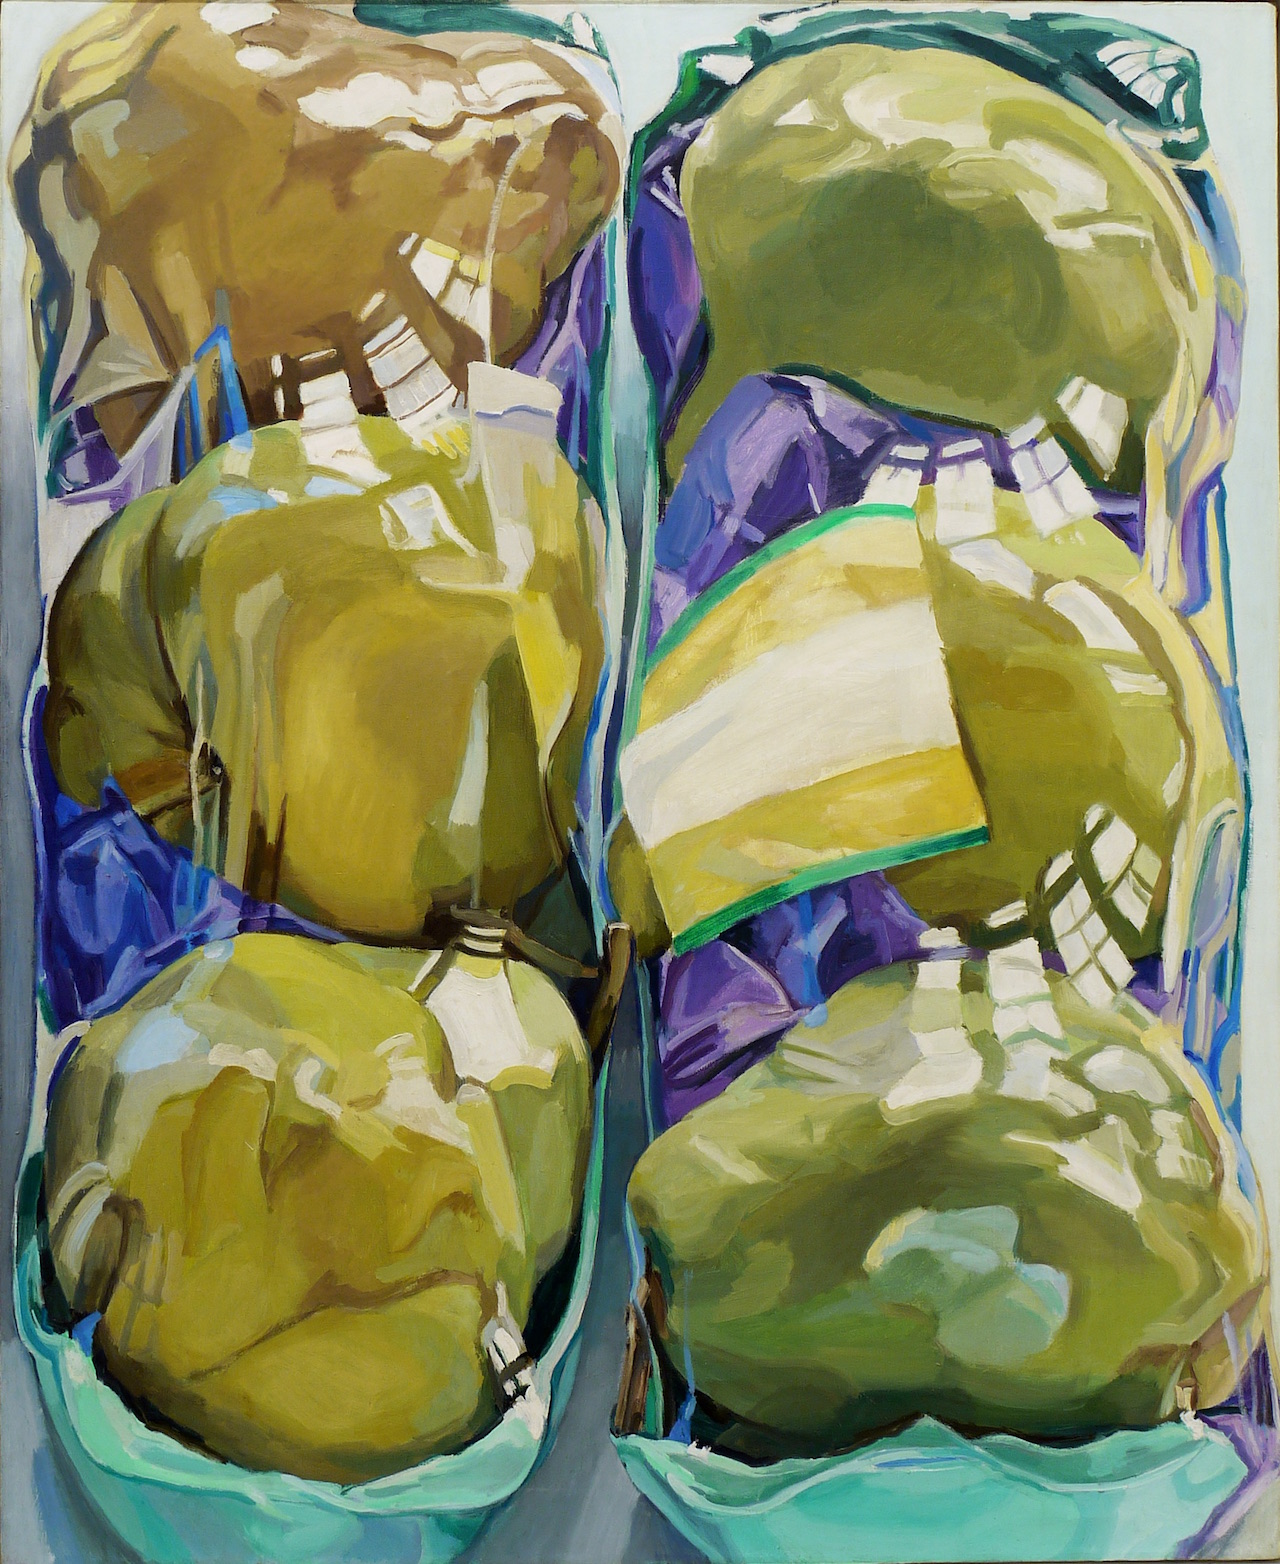 """Janet Fish, """"Untitled (Two Packages of Pears)"""" (1969), oil on canvas, 52 1/4 x 42 in"""